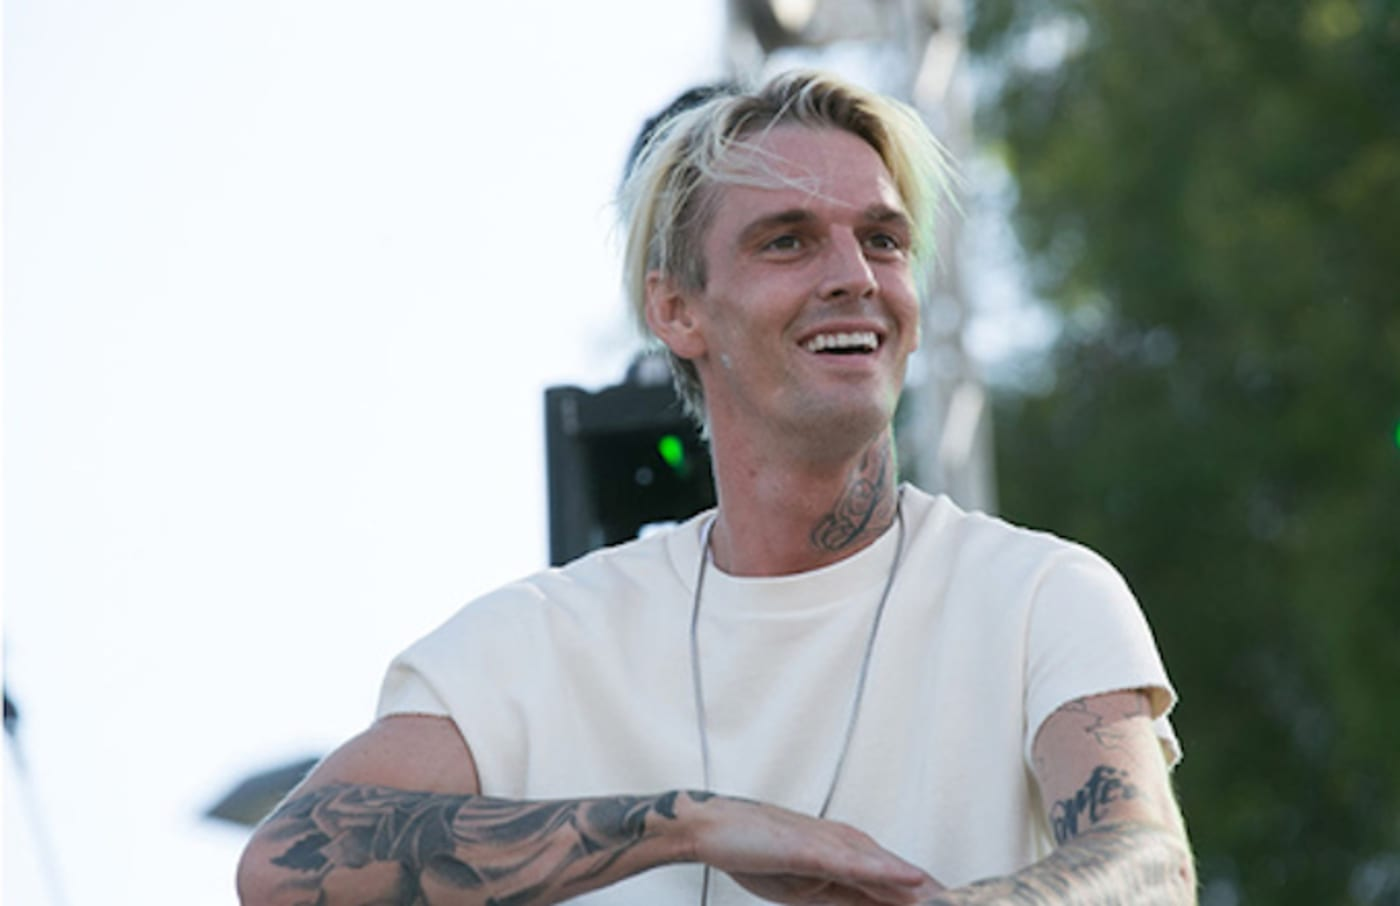 Aaron Carter attends the LA Pride Music Festival And Parade 2017.